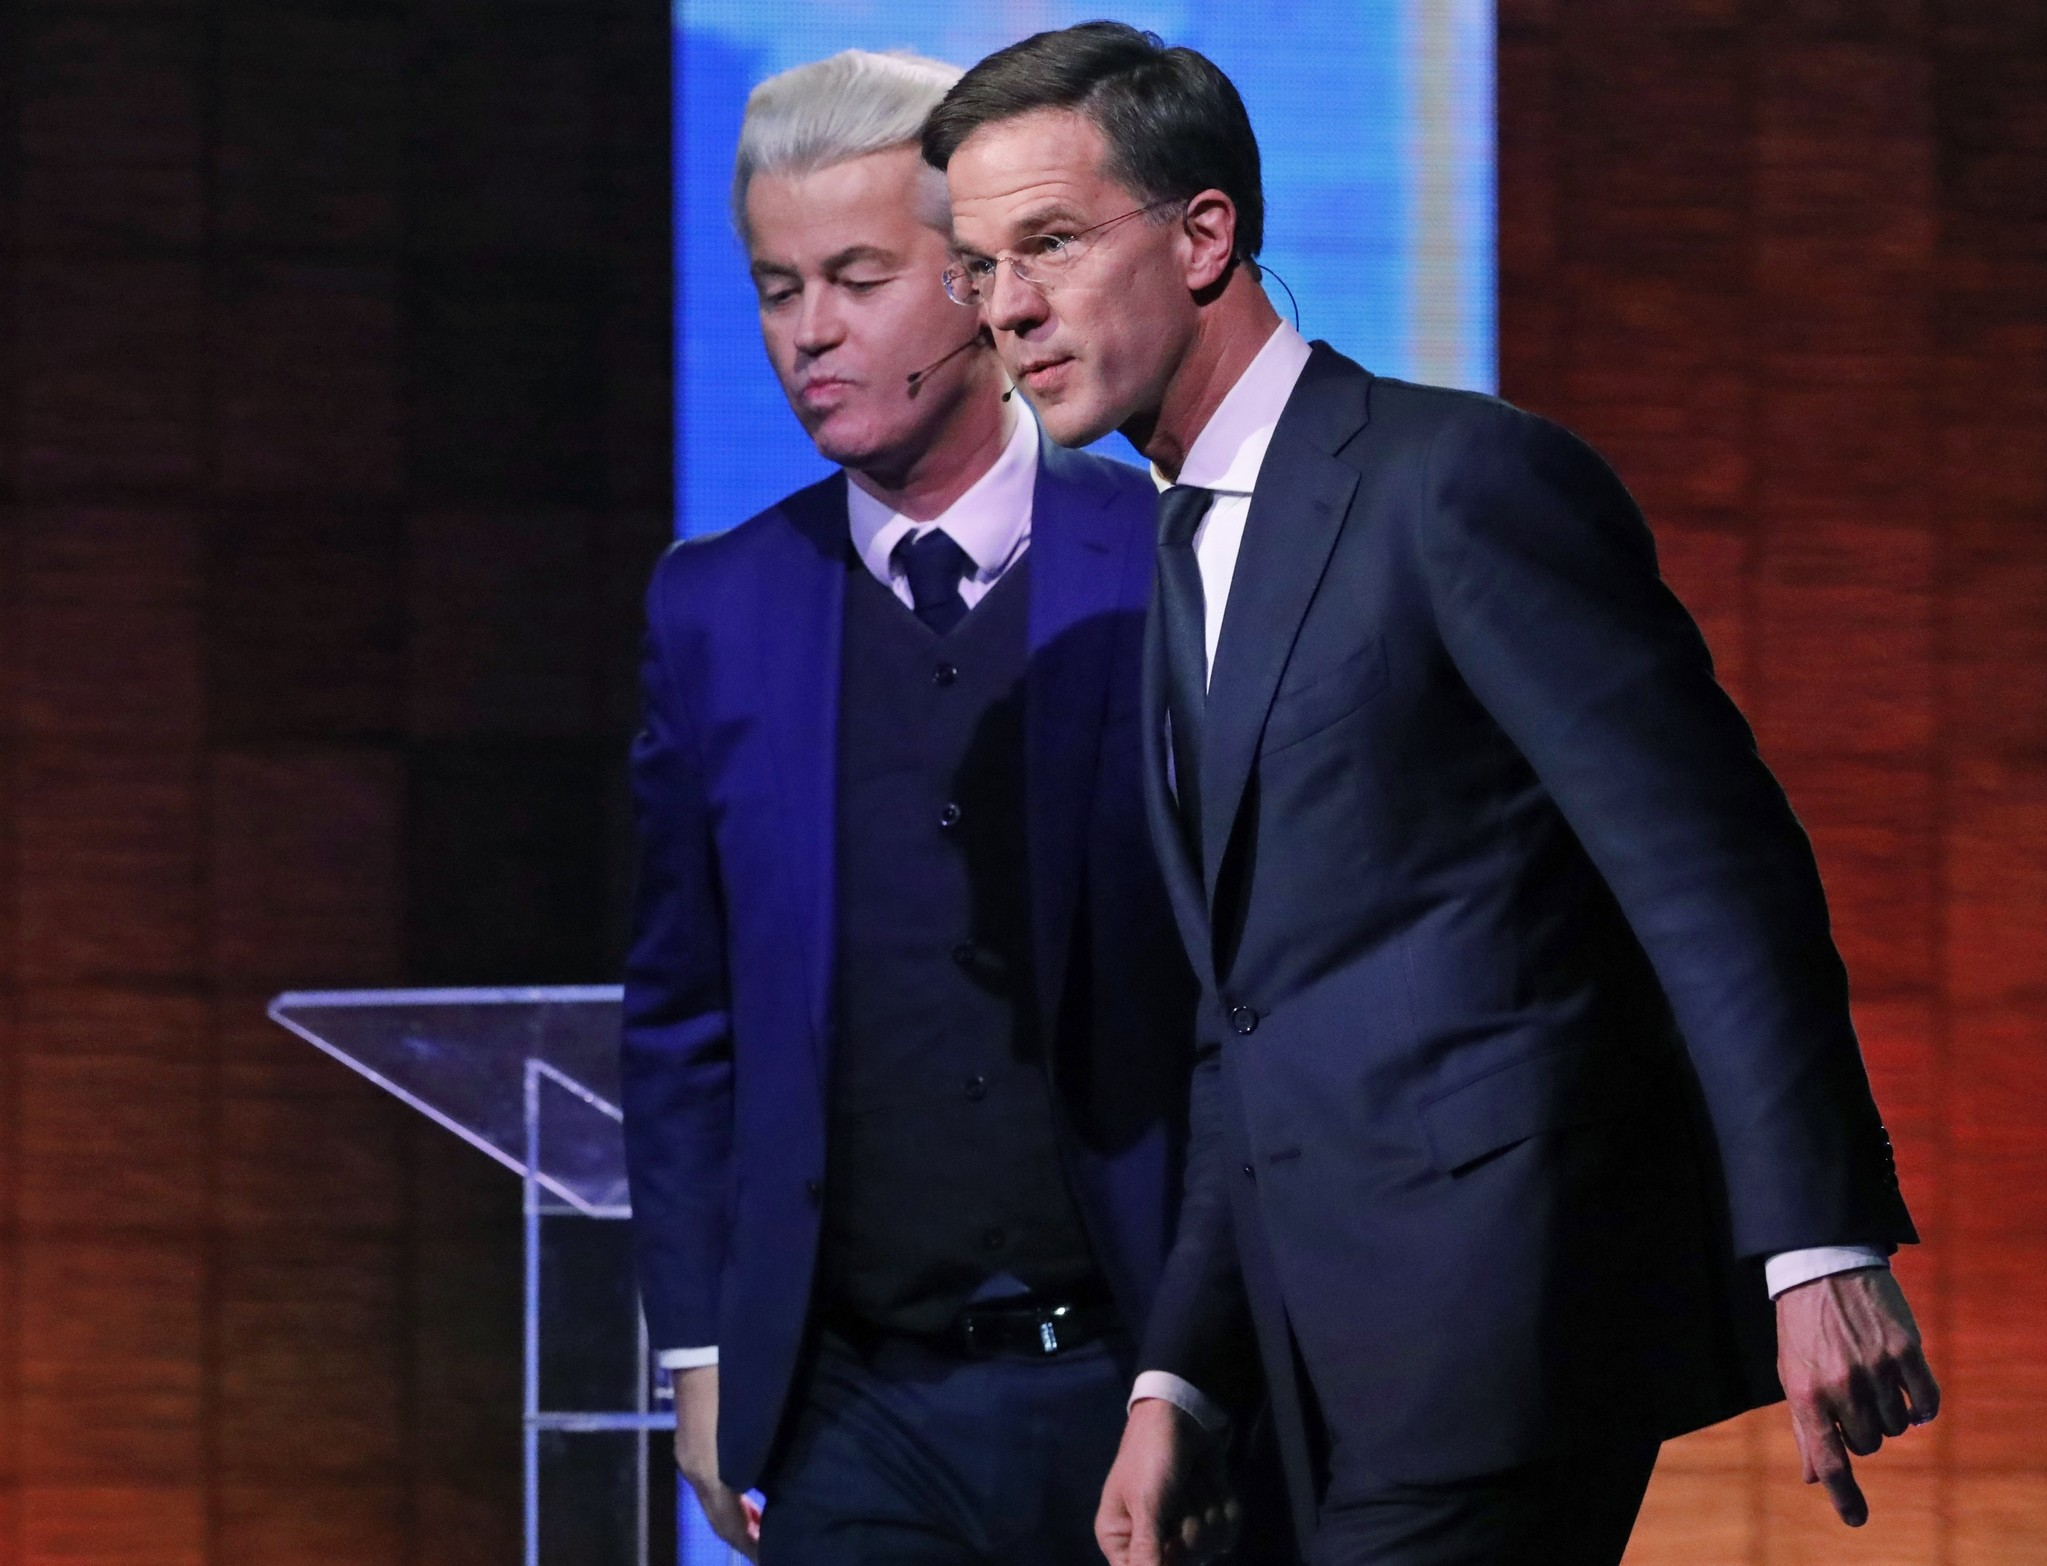 Dutch Prime Minister Mark Rutte, right, and Right-wing populist leader Geert Wilders leave after a national televised debate. (AP Photo)